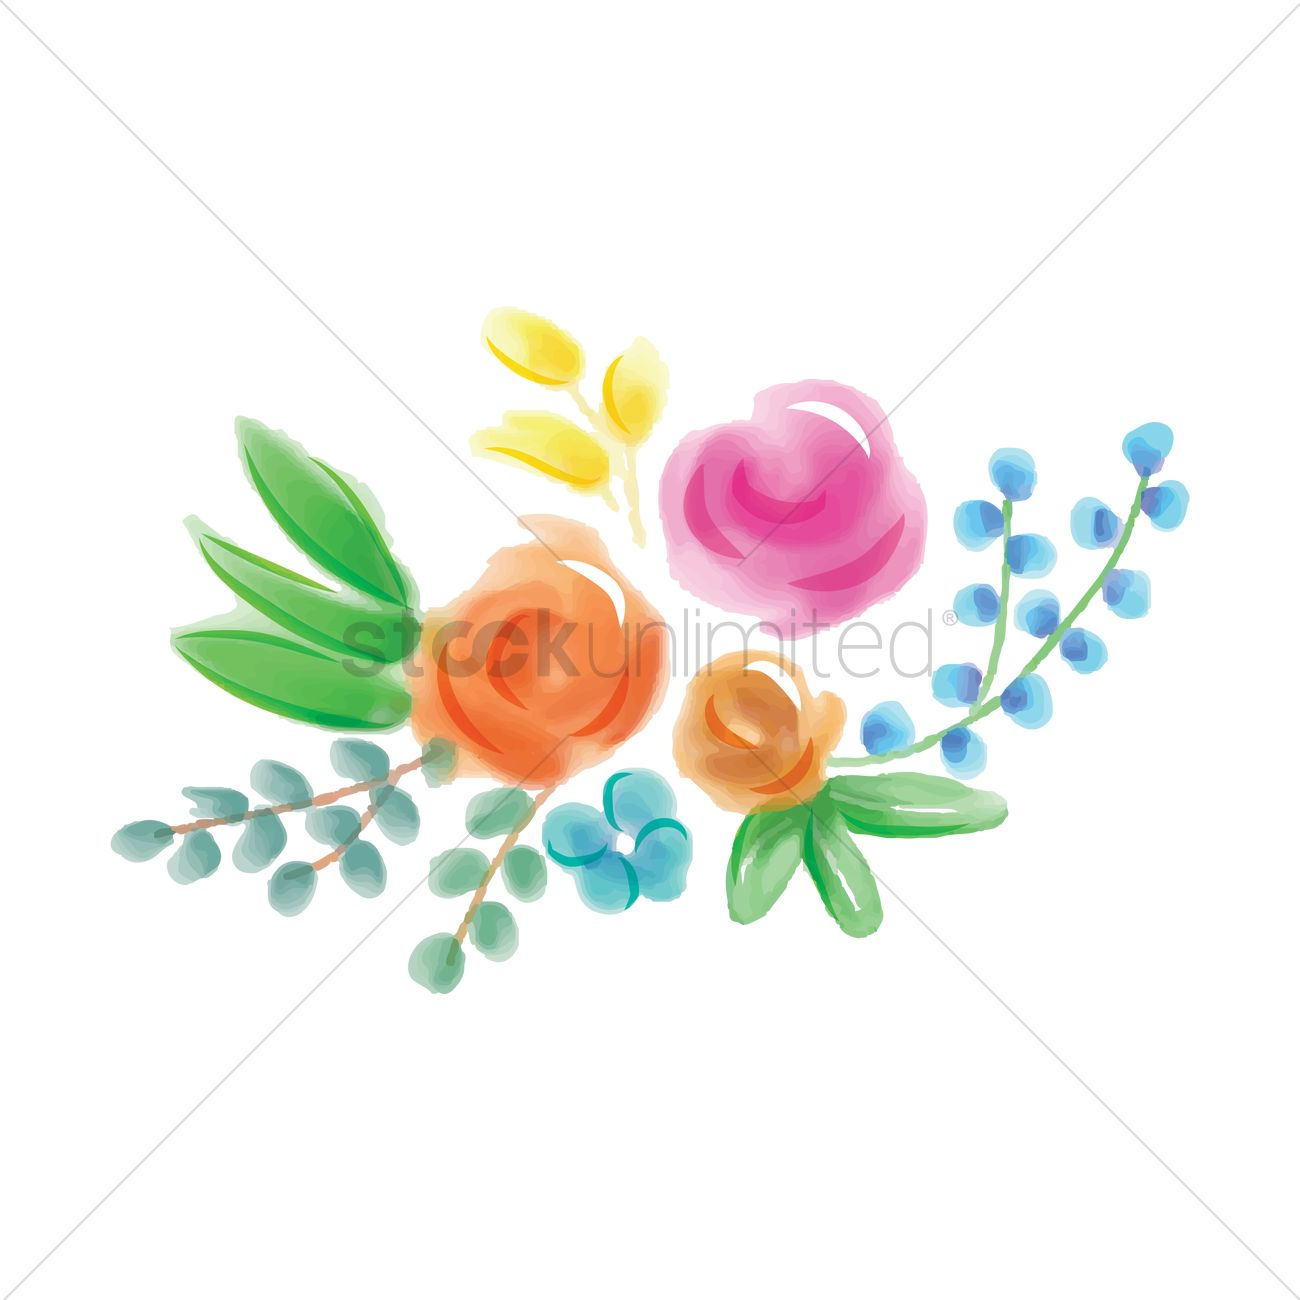 Watercolor flower with leaves Vector Image